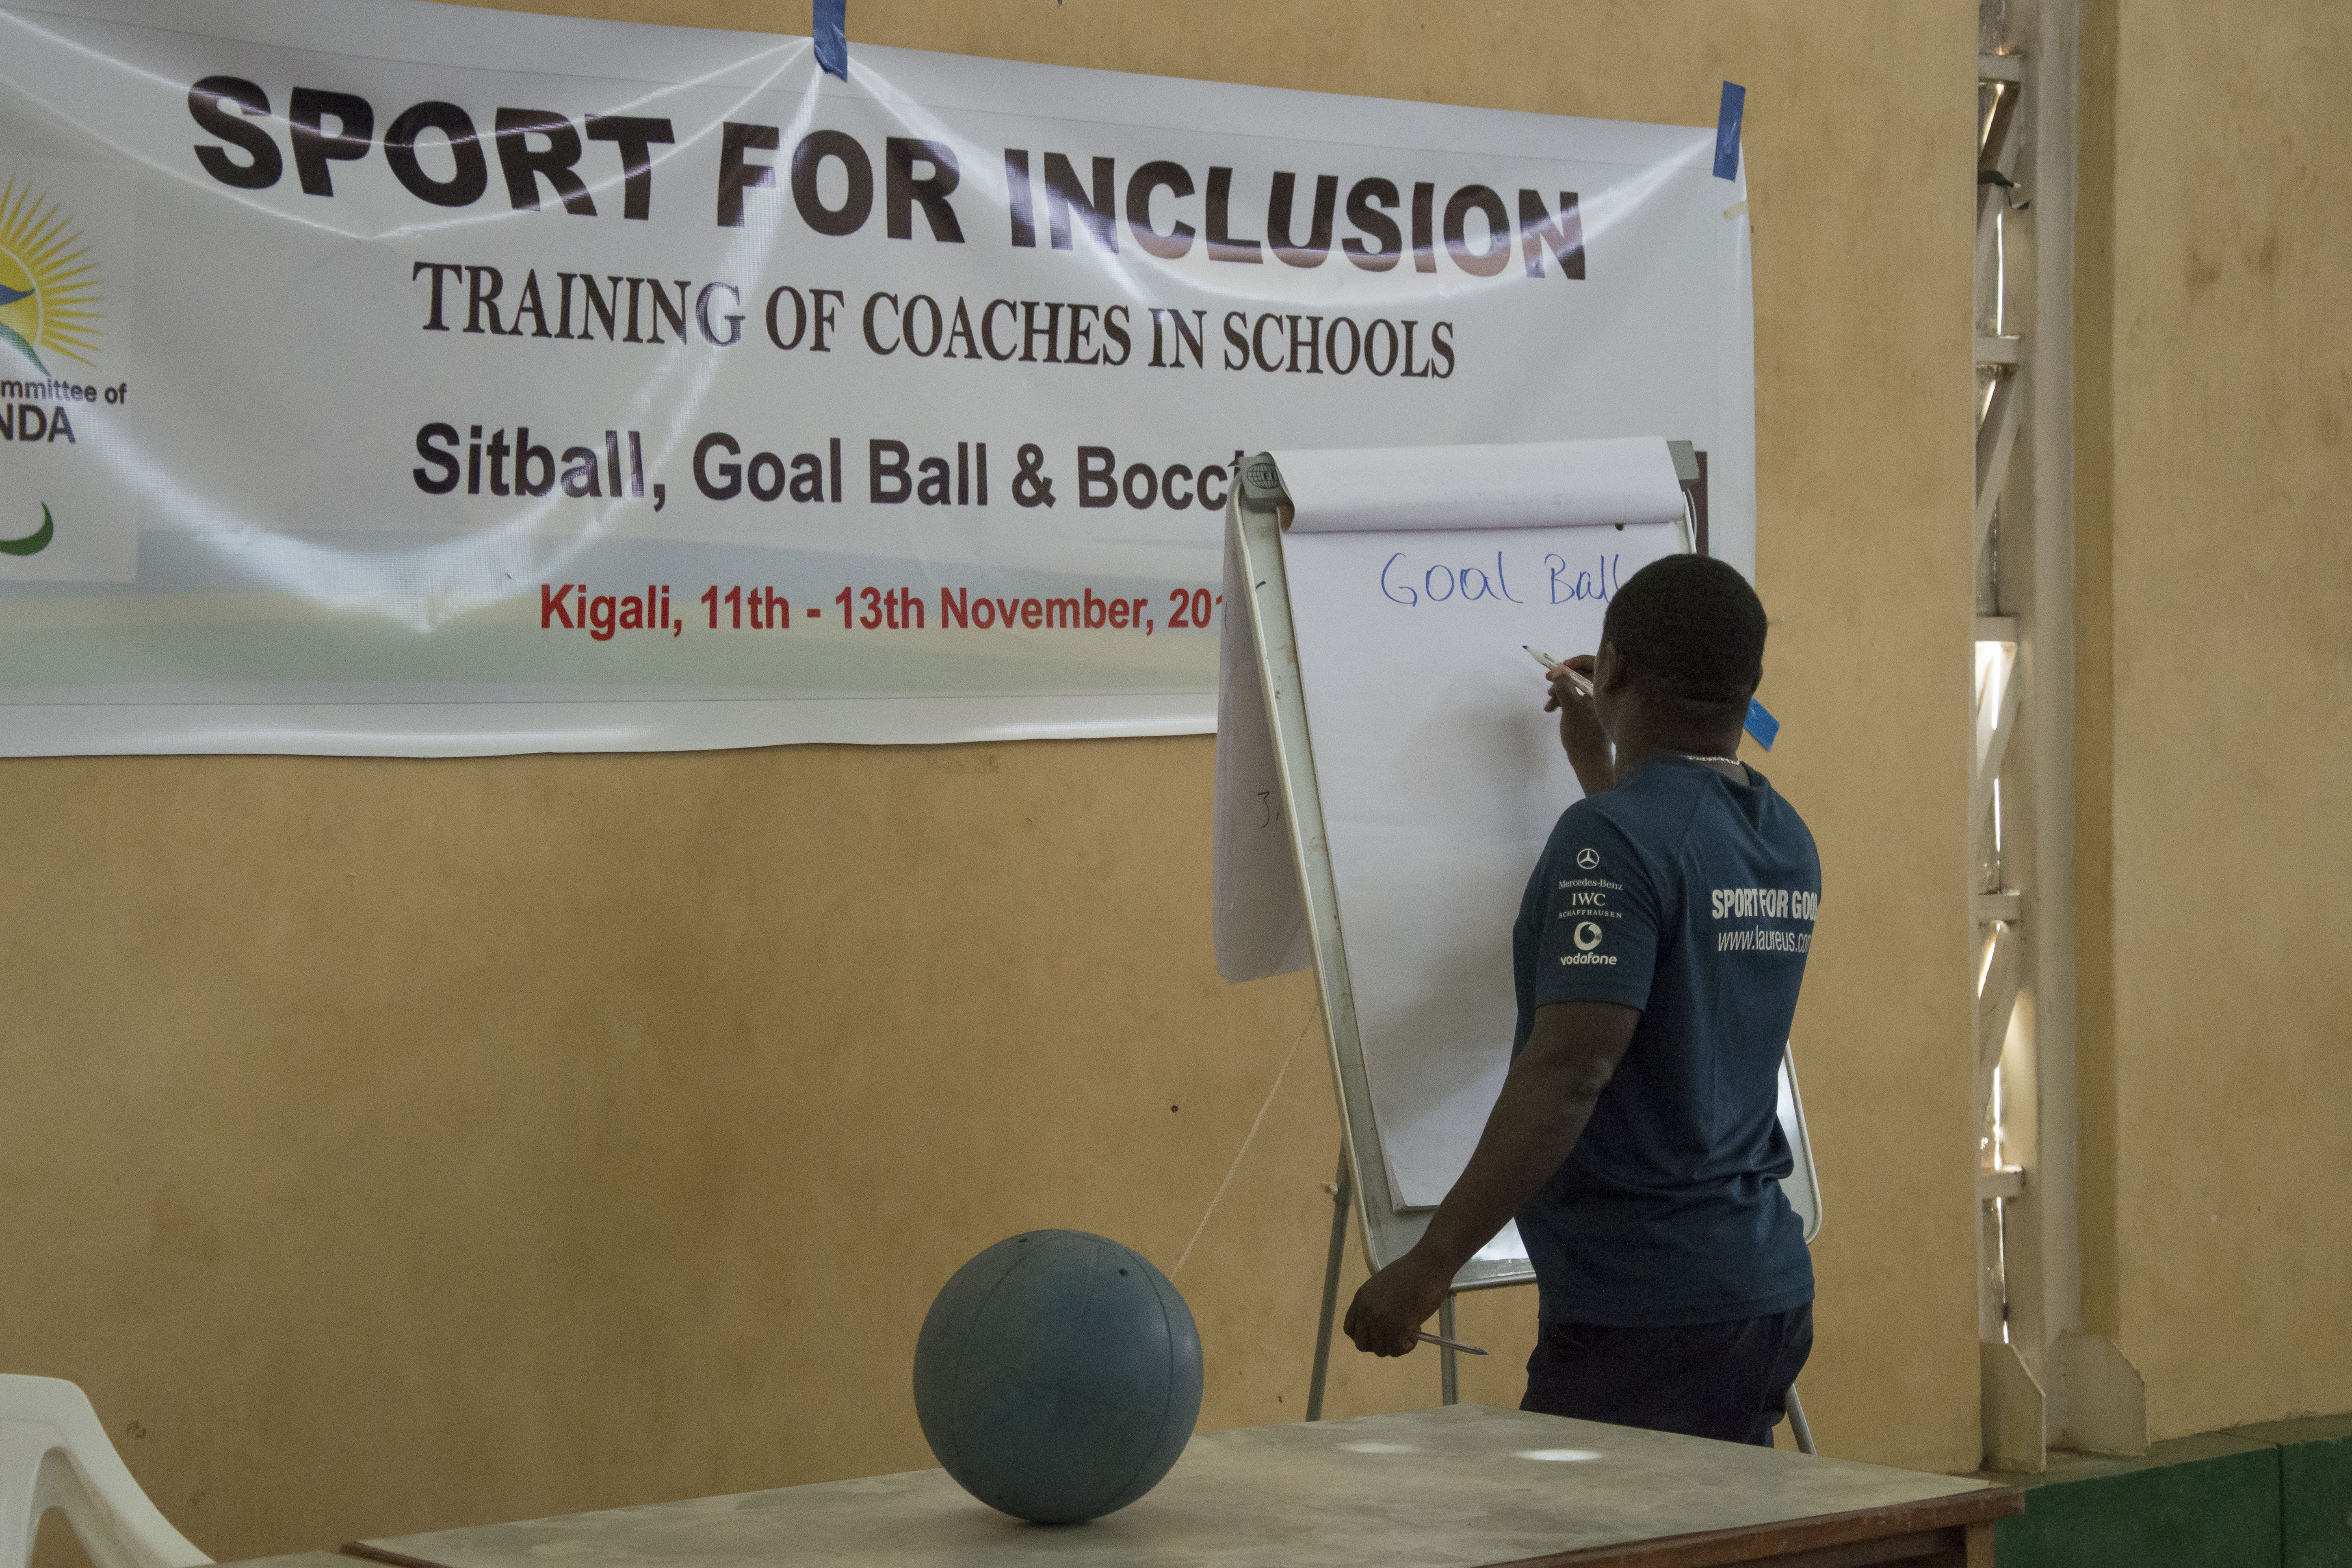 Sport for inclusion_Training of coaches in schools